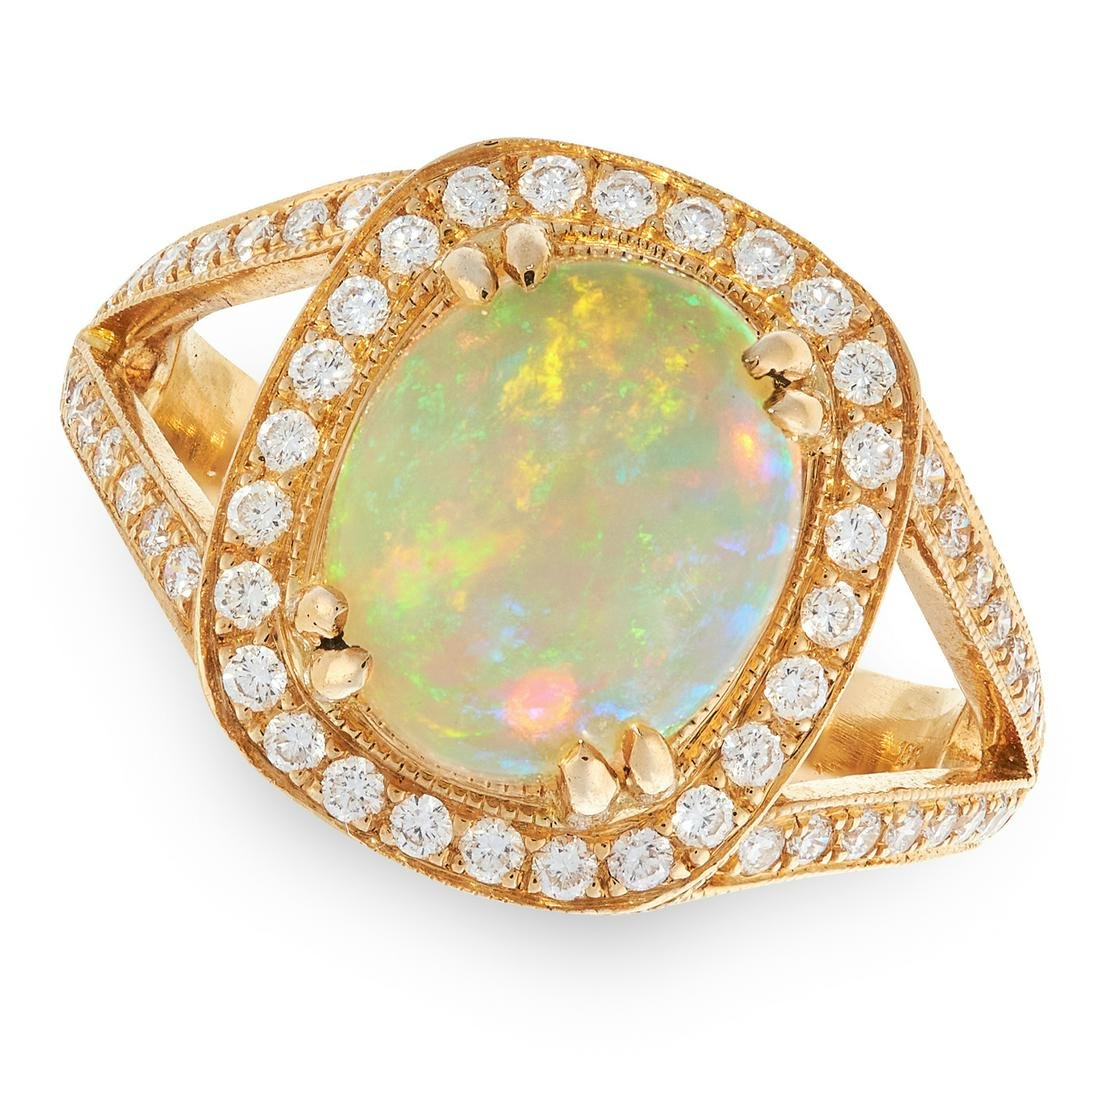 AN OPAL AND DIAMOND DRESS RING in 18ct yellow gold, set